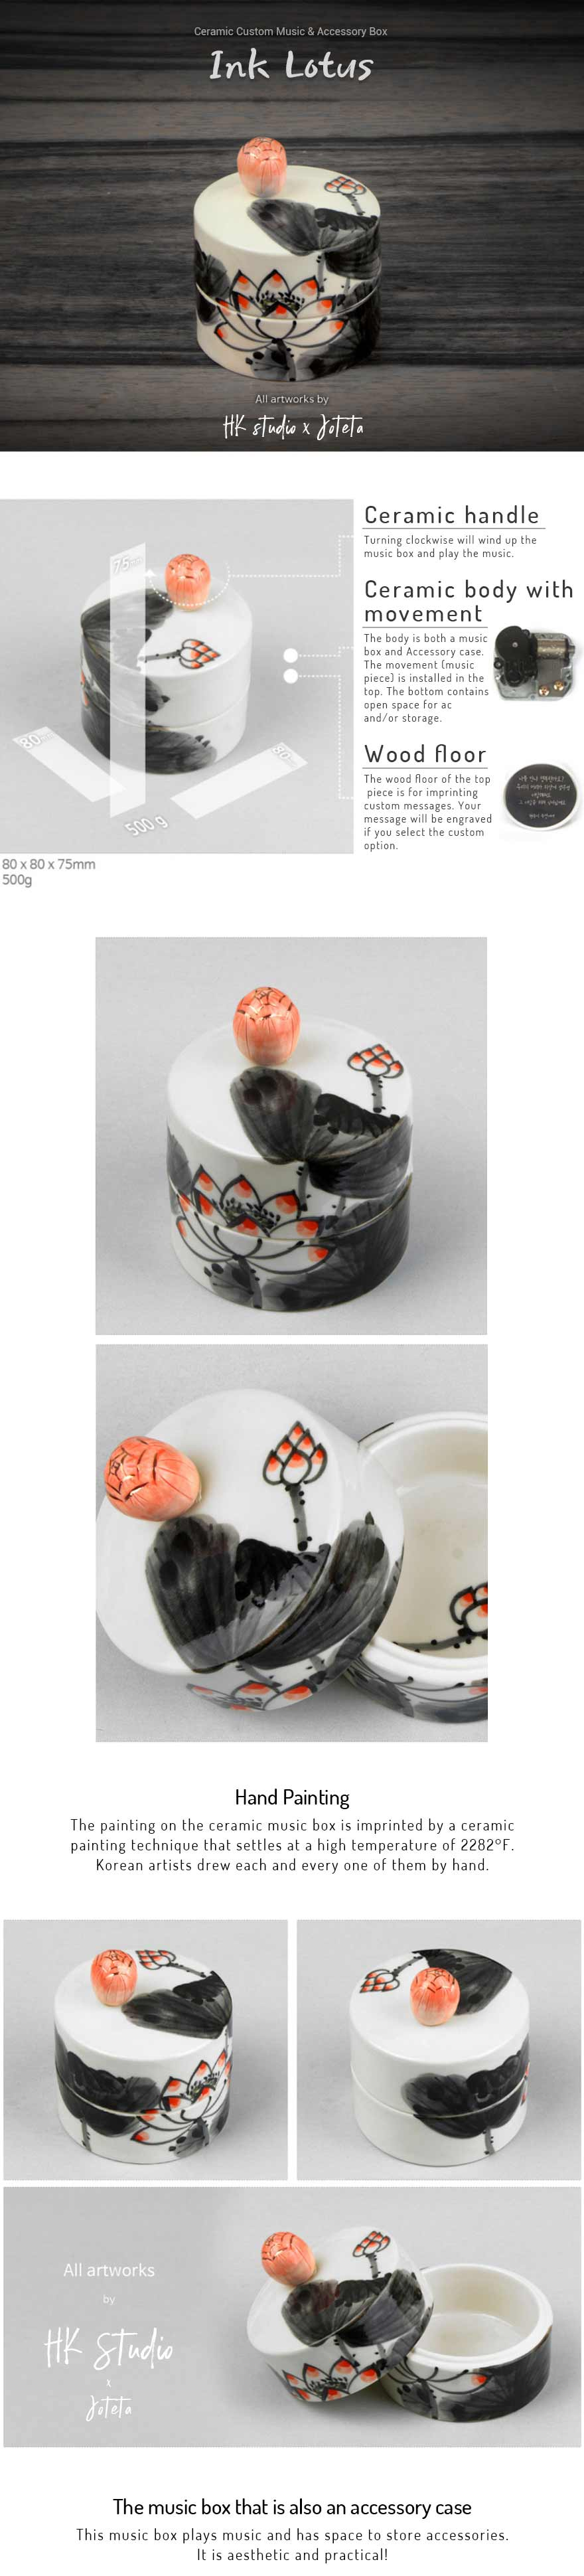 With the Ink Lotus Ceramic Custom Music Jewelry Box you can show your loved one how much you care. Joteta only uses Korean artists that are skilled in their craft and provide only the highest of quality products to customers.